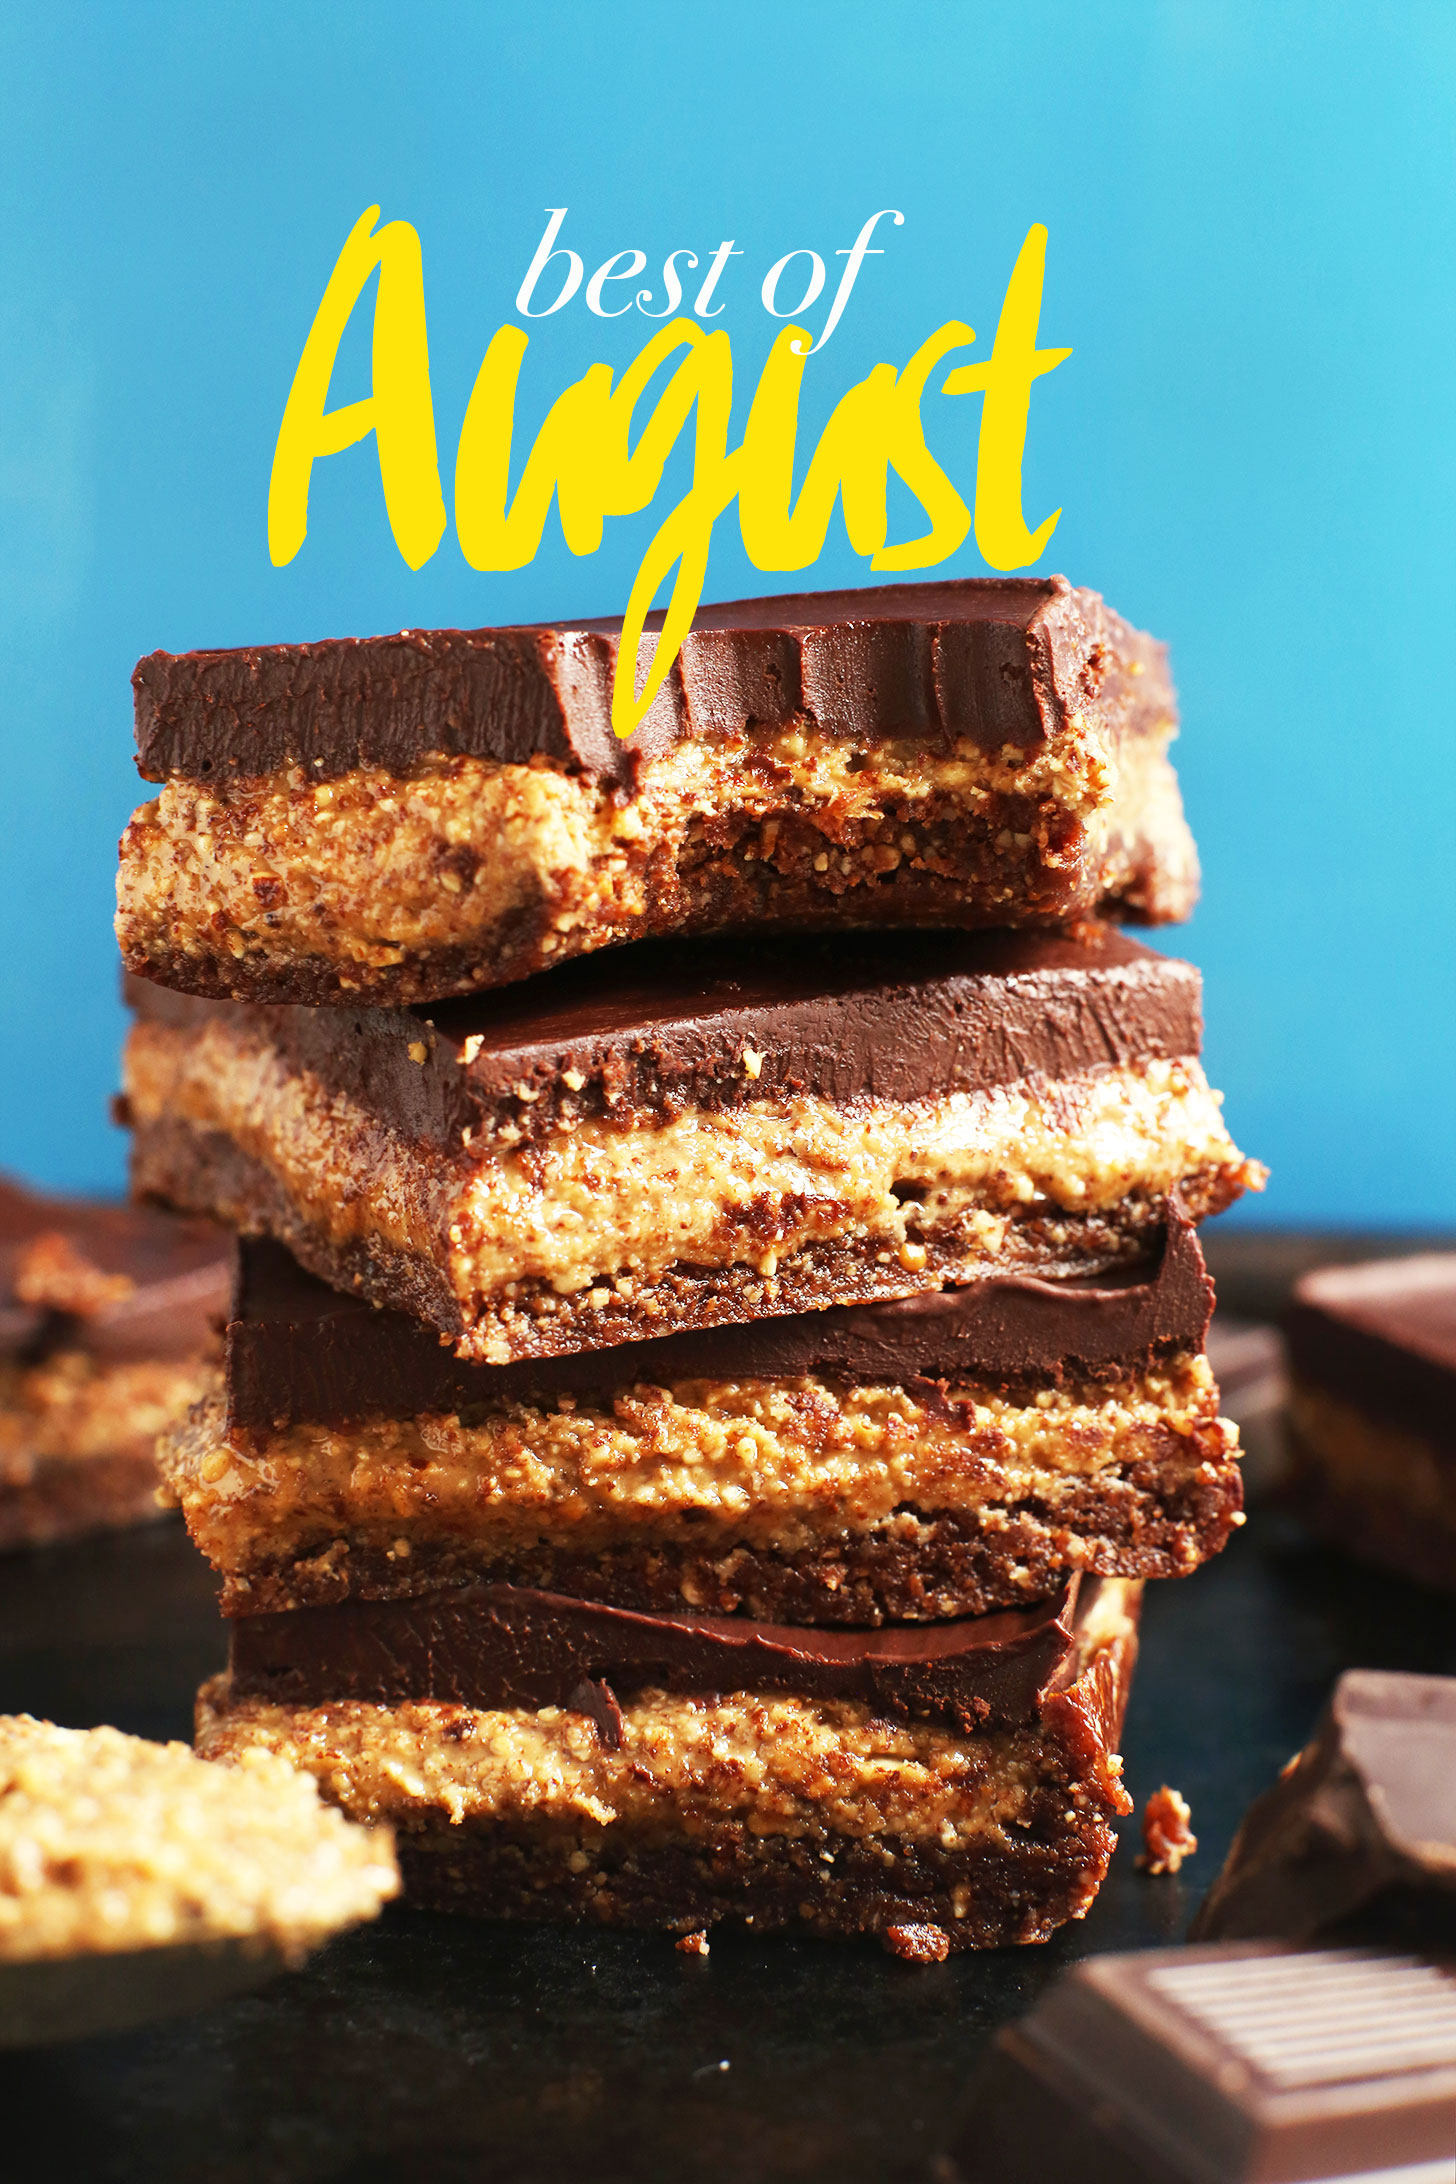 Stack of gluten-free vegan dessert for our Best of August recipe roundup